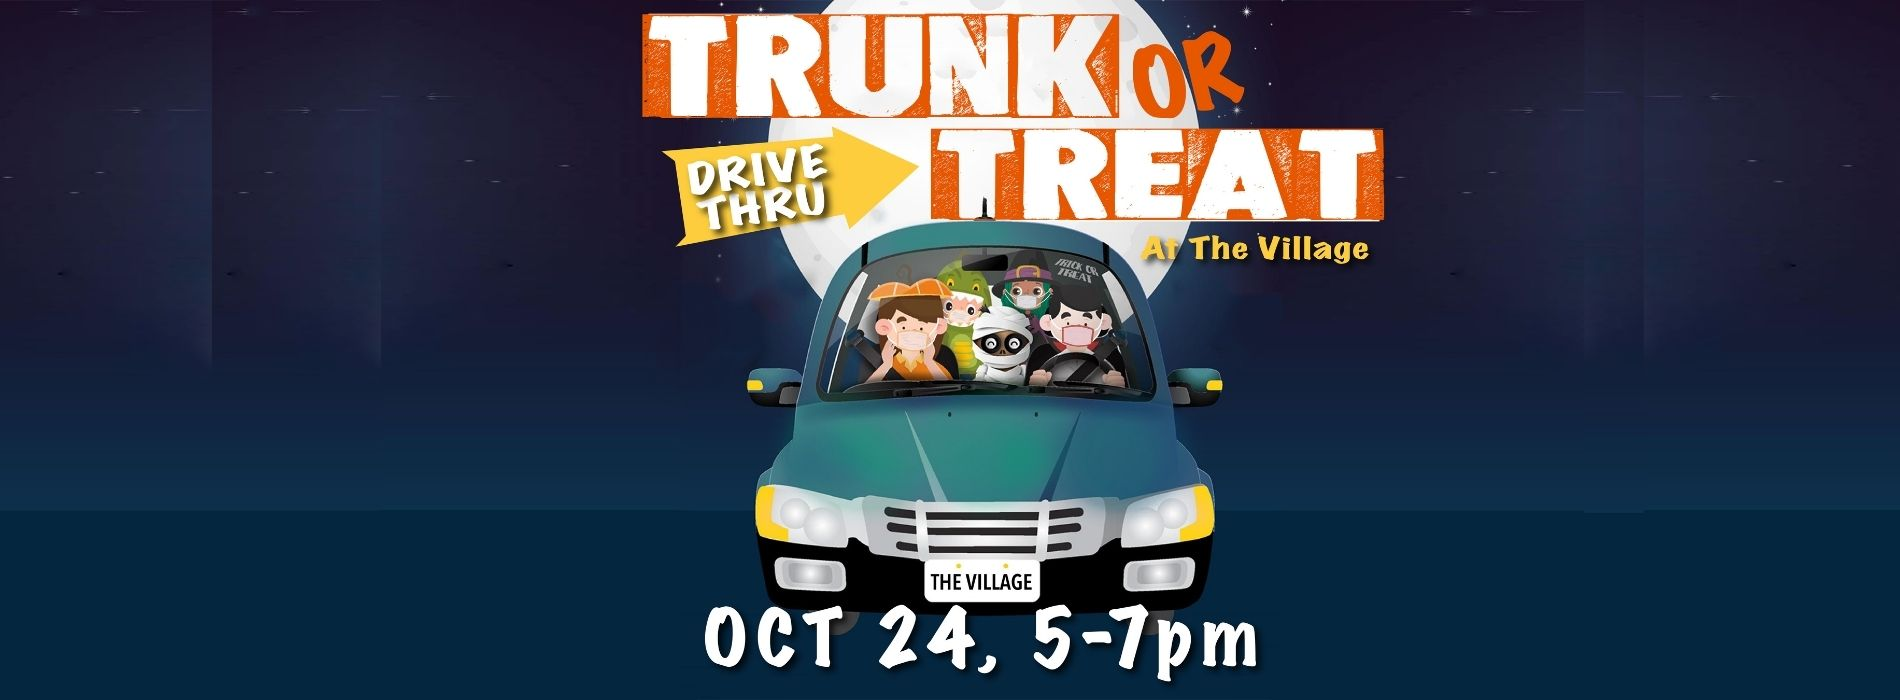 Trunk or Treat Halloween Drive-Thru At The Village Christian Church in Minooka, IL for the kids